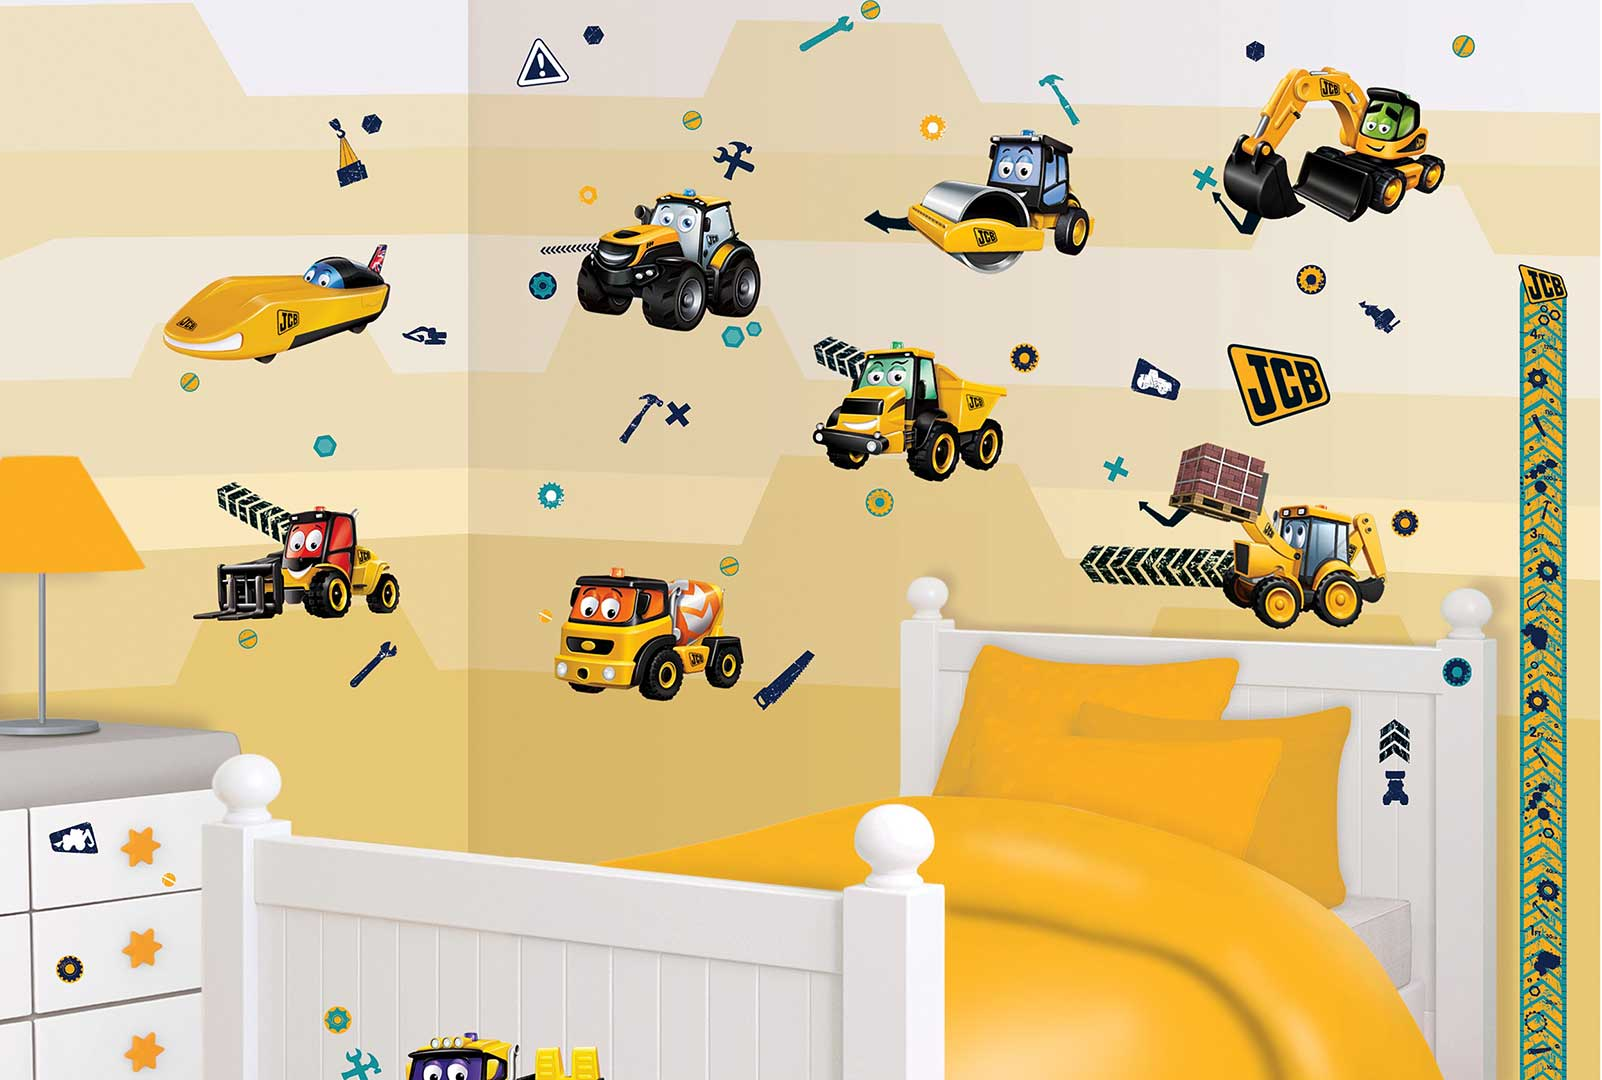 walltastic wandtattoo kinderzimmer baustelle jcb. Black Bedroom Furniture Sets. Home Design Ideas